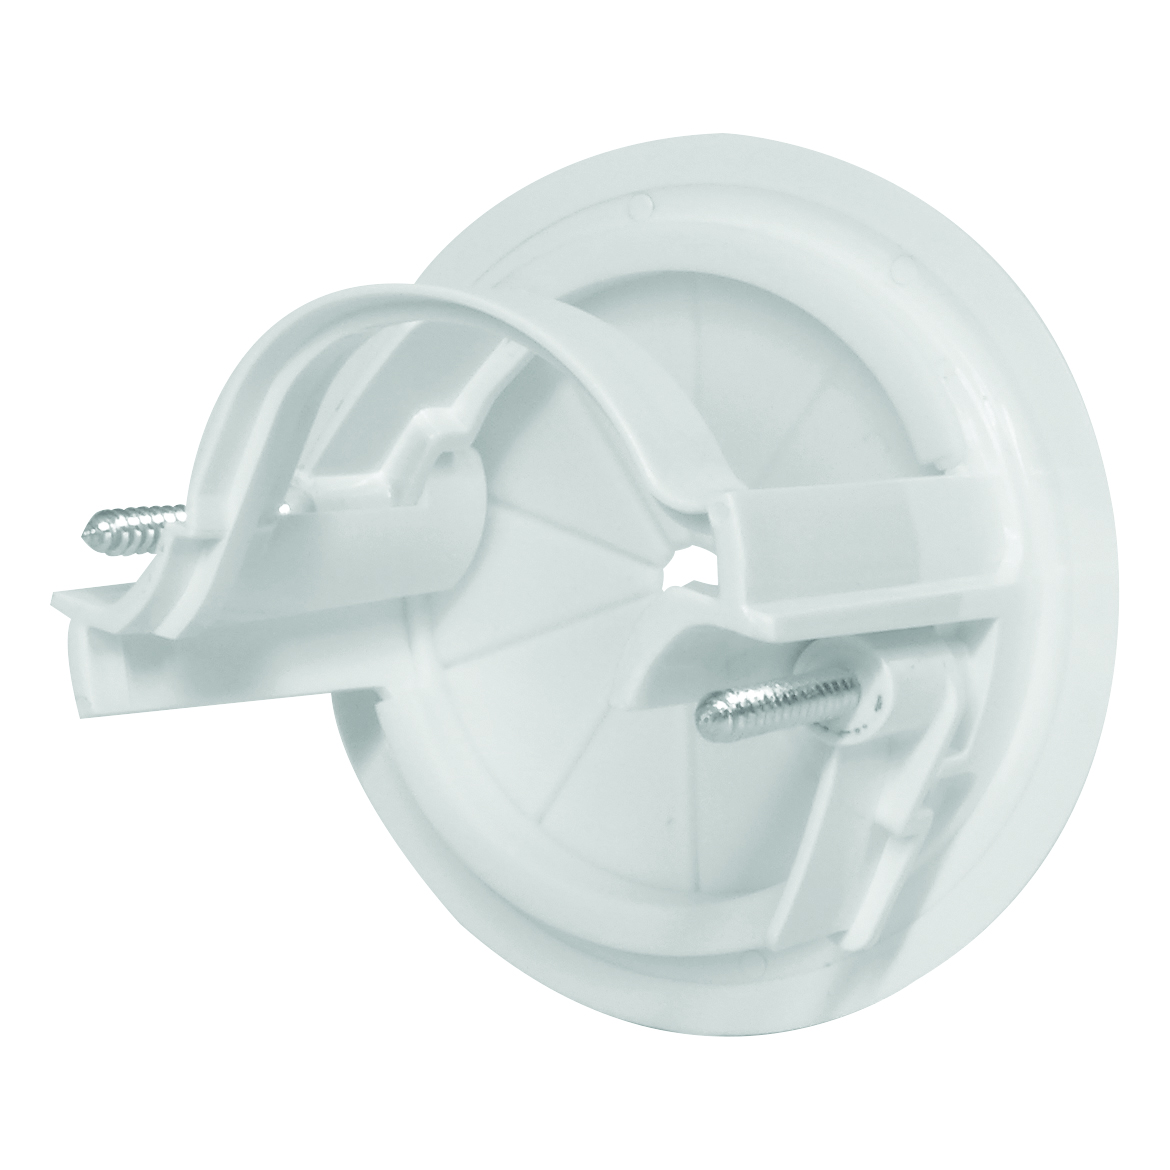 05MM-WP66 - 60mm Wall Entry Point for AV and Low Voltage Electrical Cable Management Back of Product Image